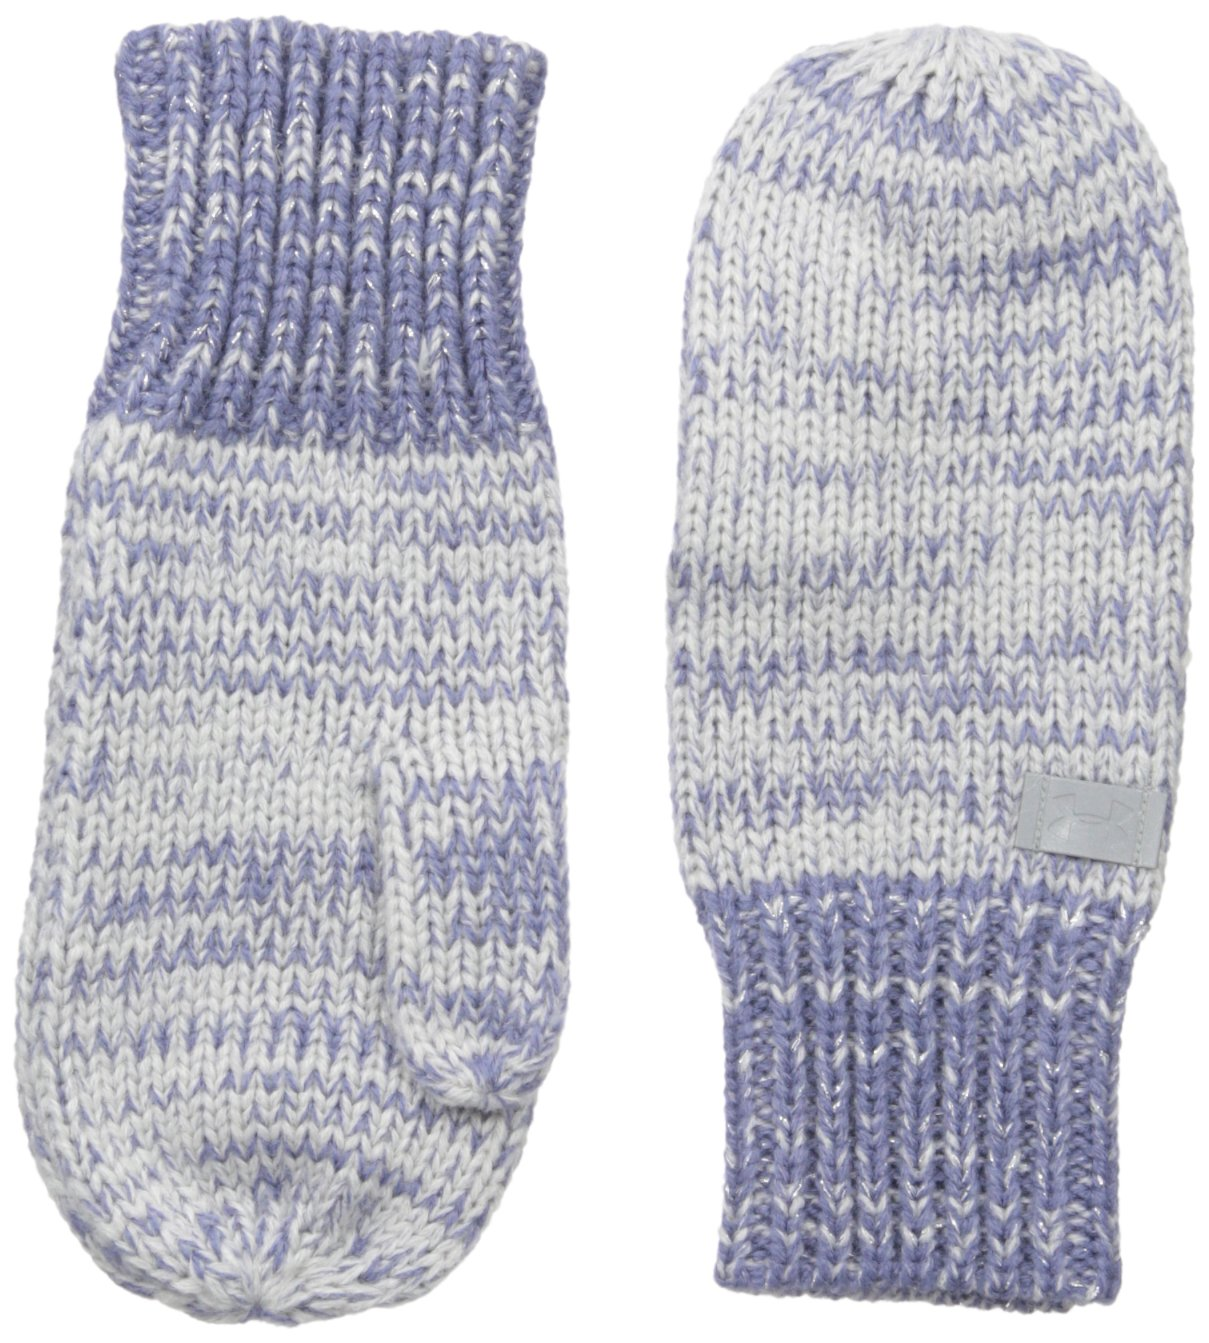 Under Armour Girls Shimmer Knit Mittens Under Armour Accessories 1286172